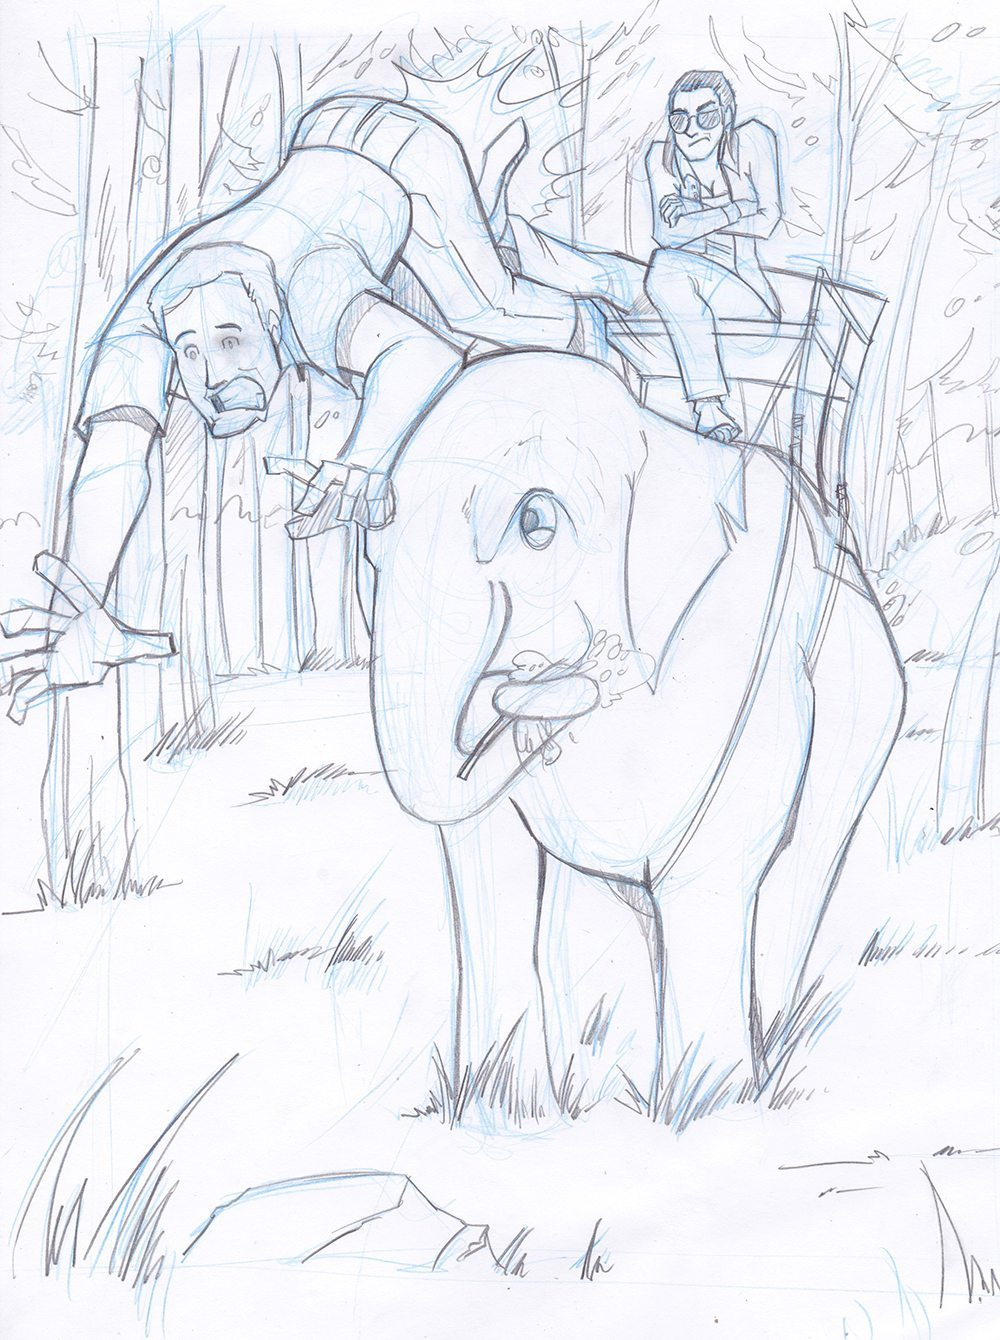 Draft of a Couple Riding an Elephant by Silvadoray